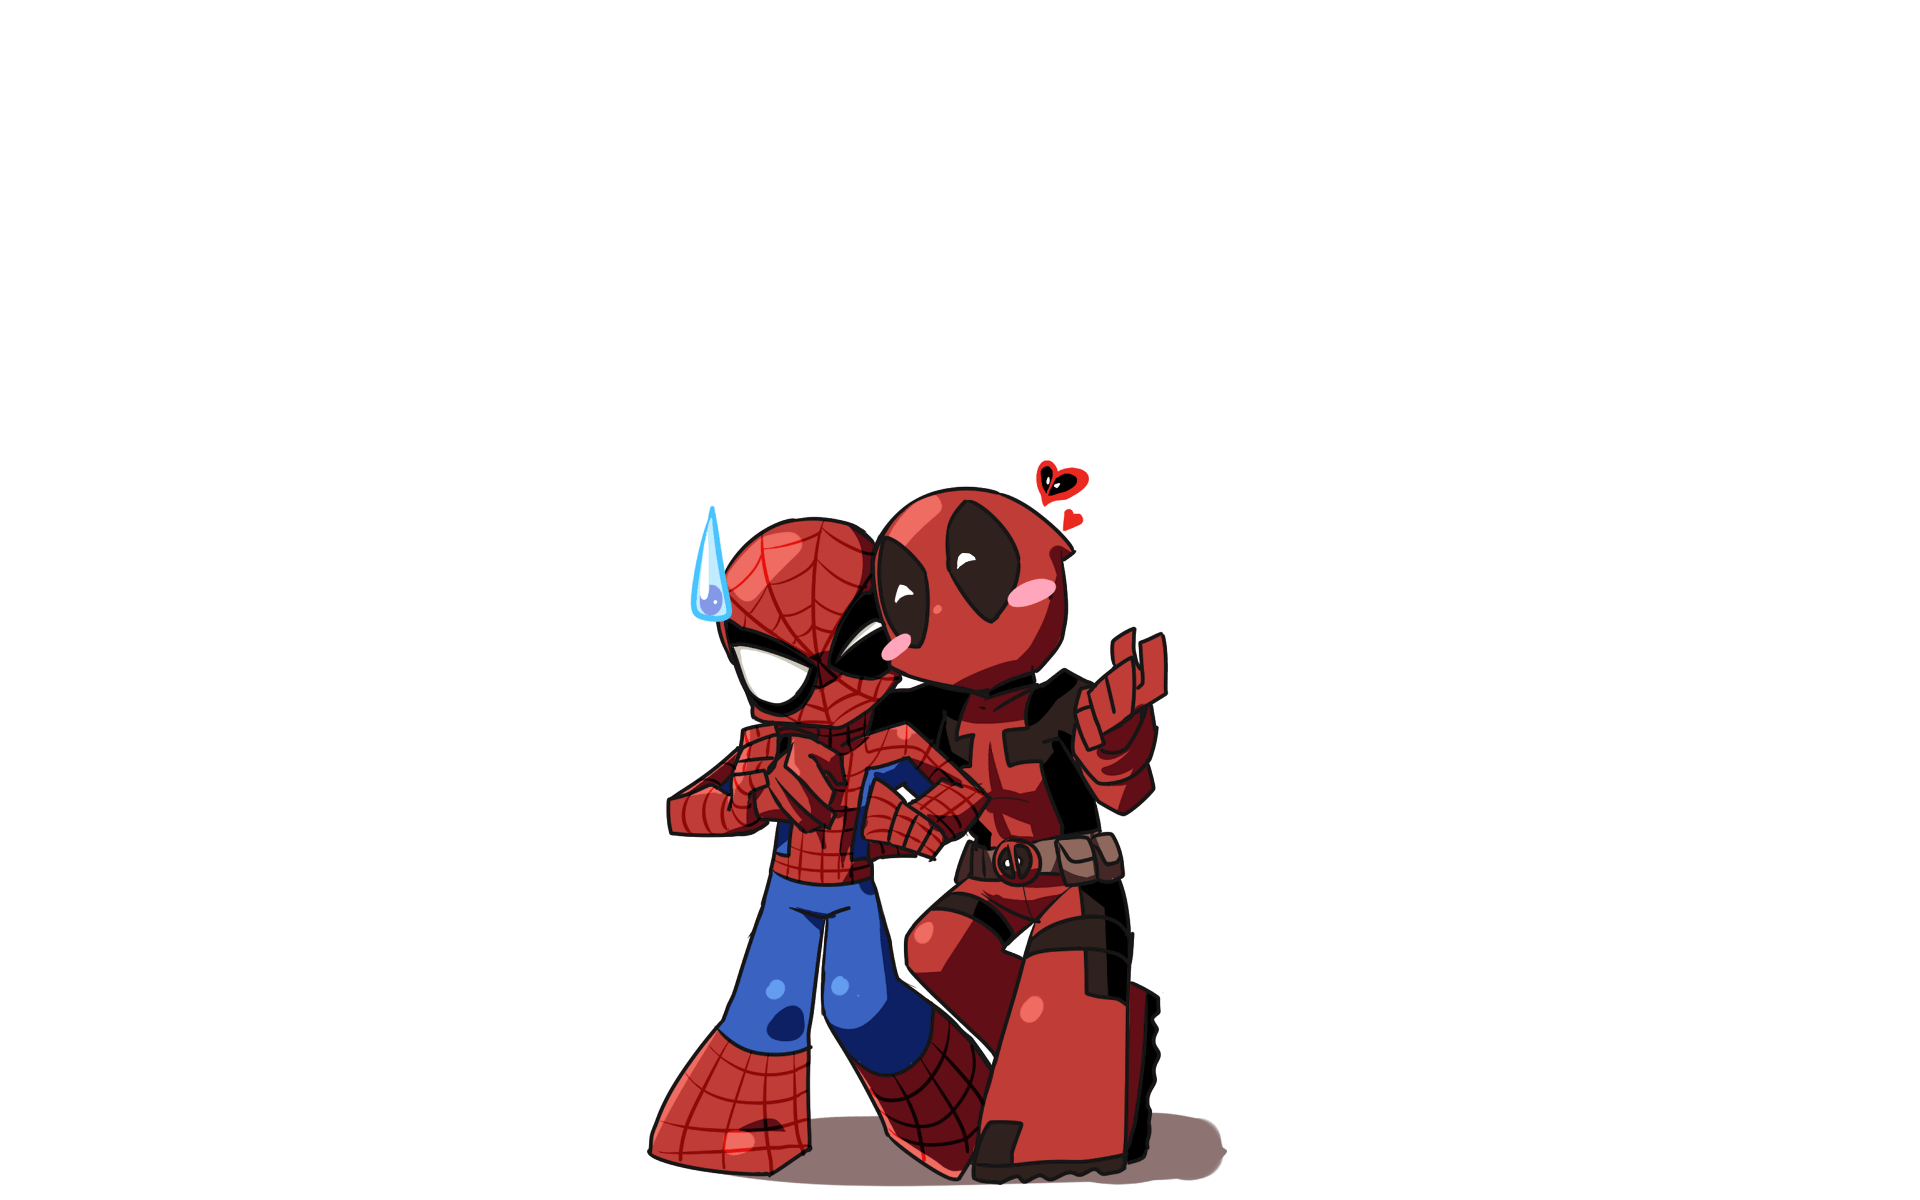 Iphone Wallpaper For Teenage Girl Chibi Spider Man And Deadpool Png